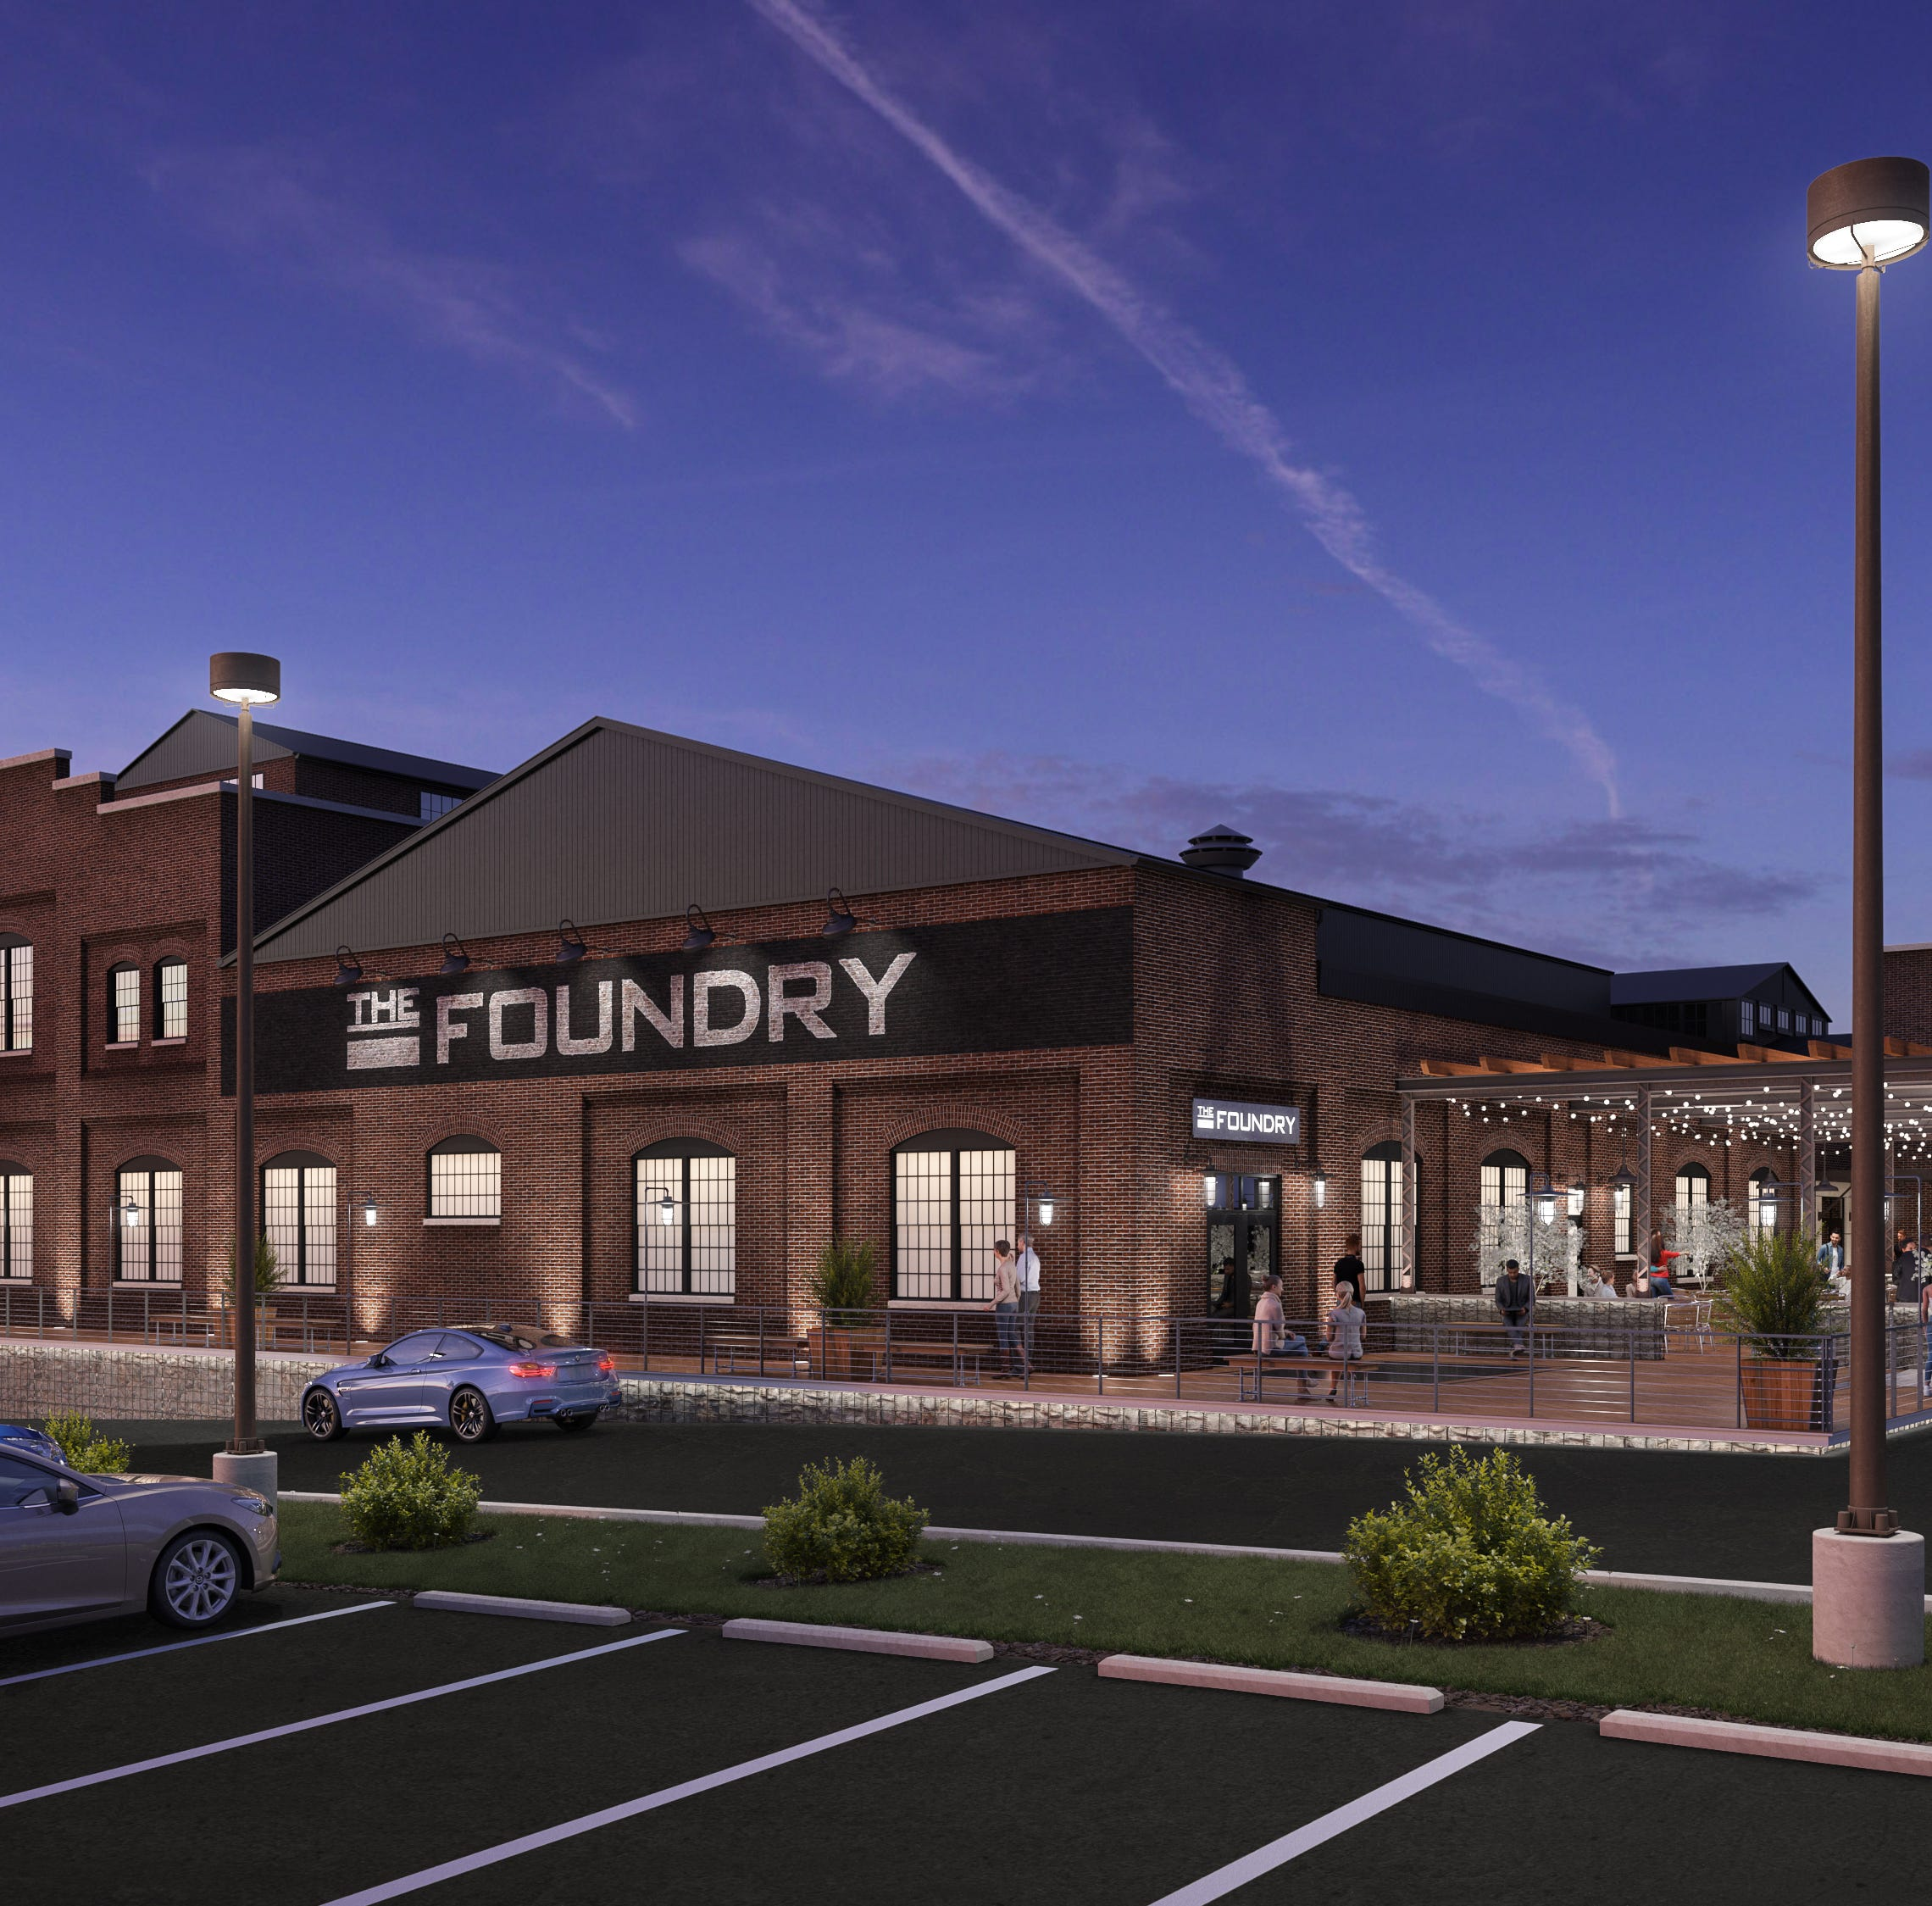 The Foundry in York City is getting a face-lift